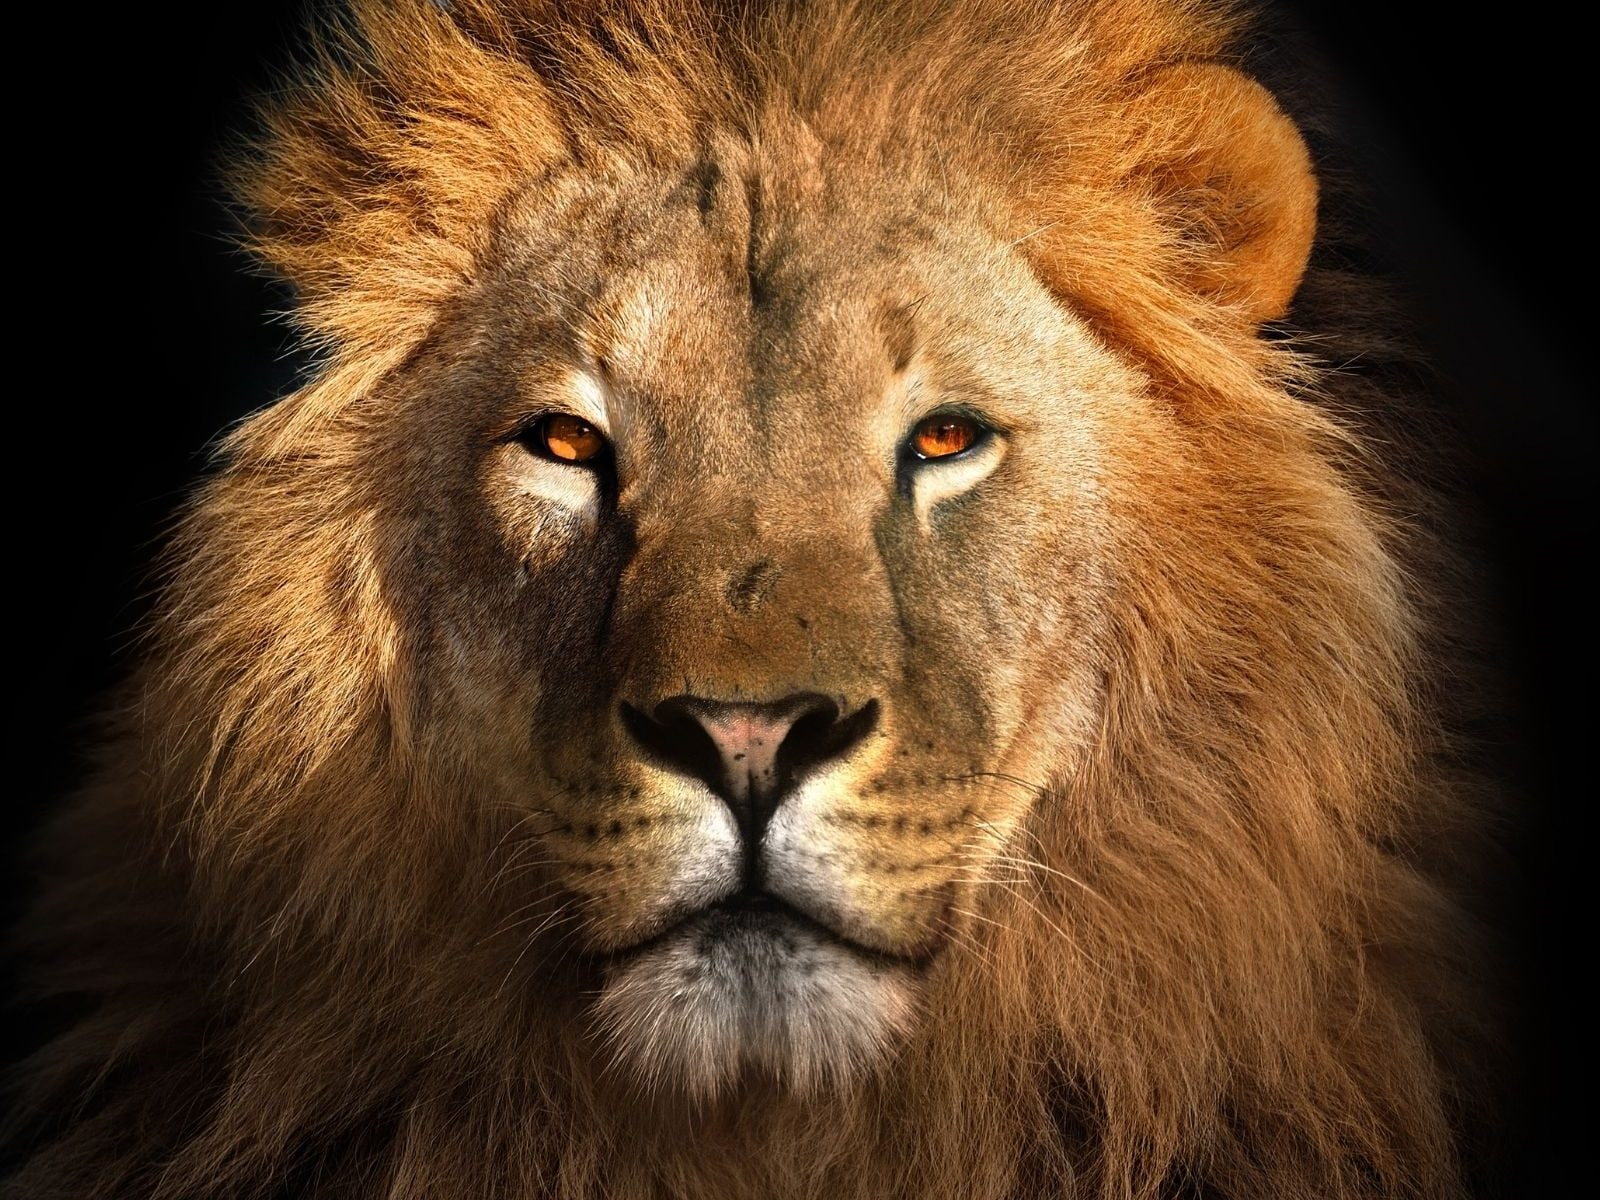 World Lion Day 20 History and Significance